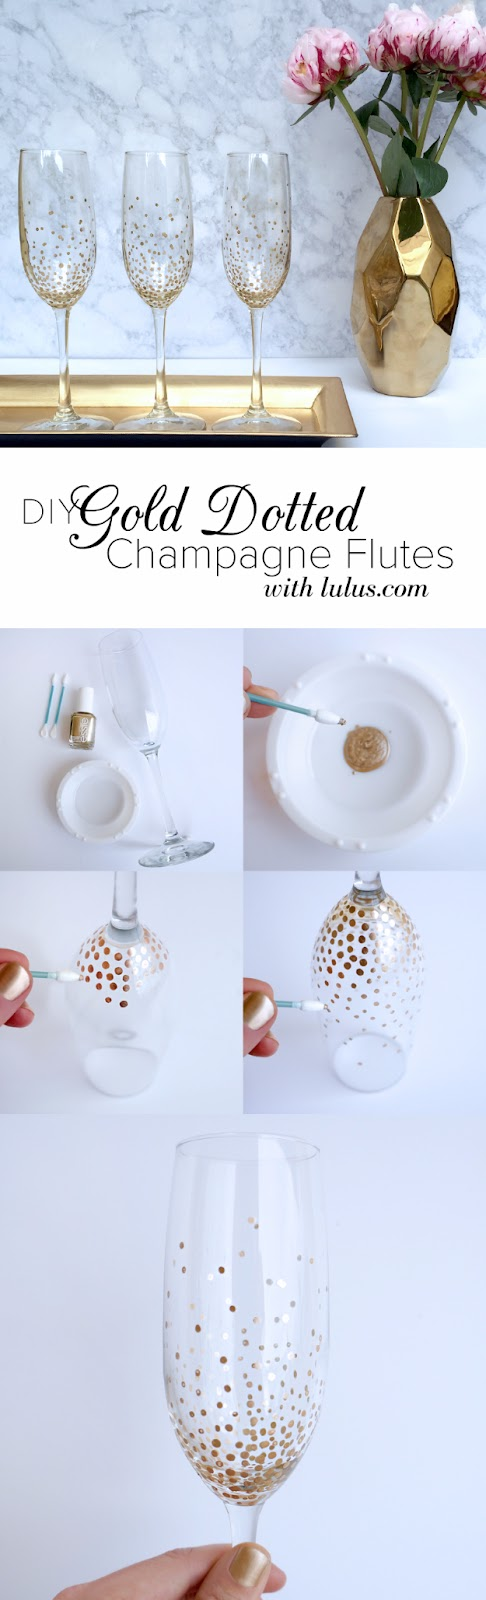 gold dot champagne flutes, a craft that makes money